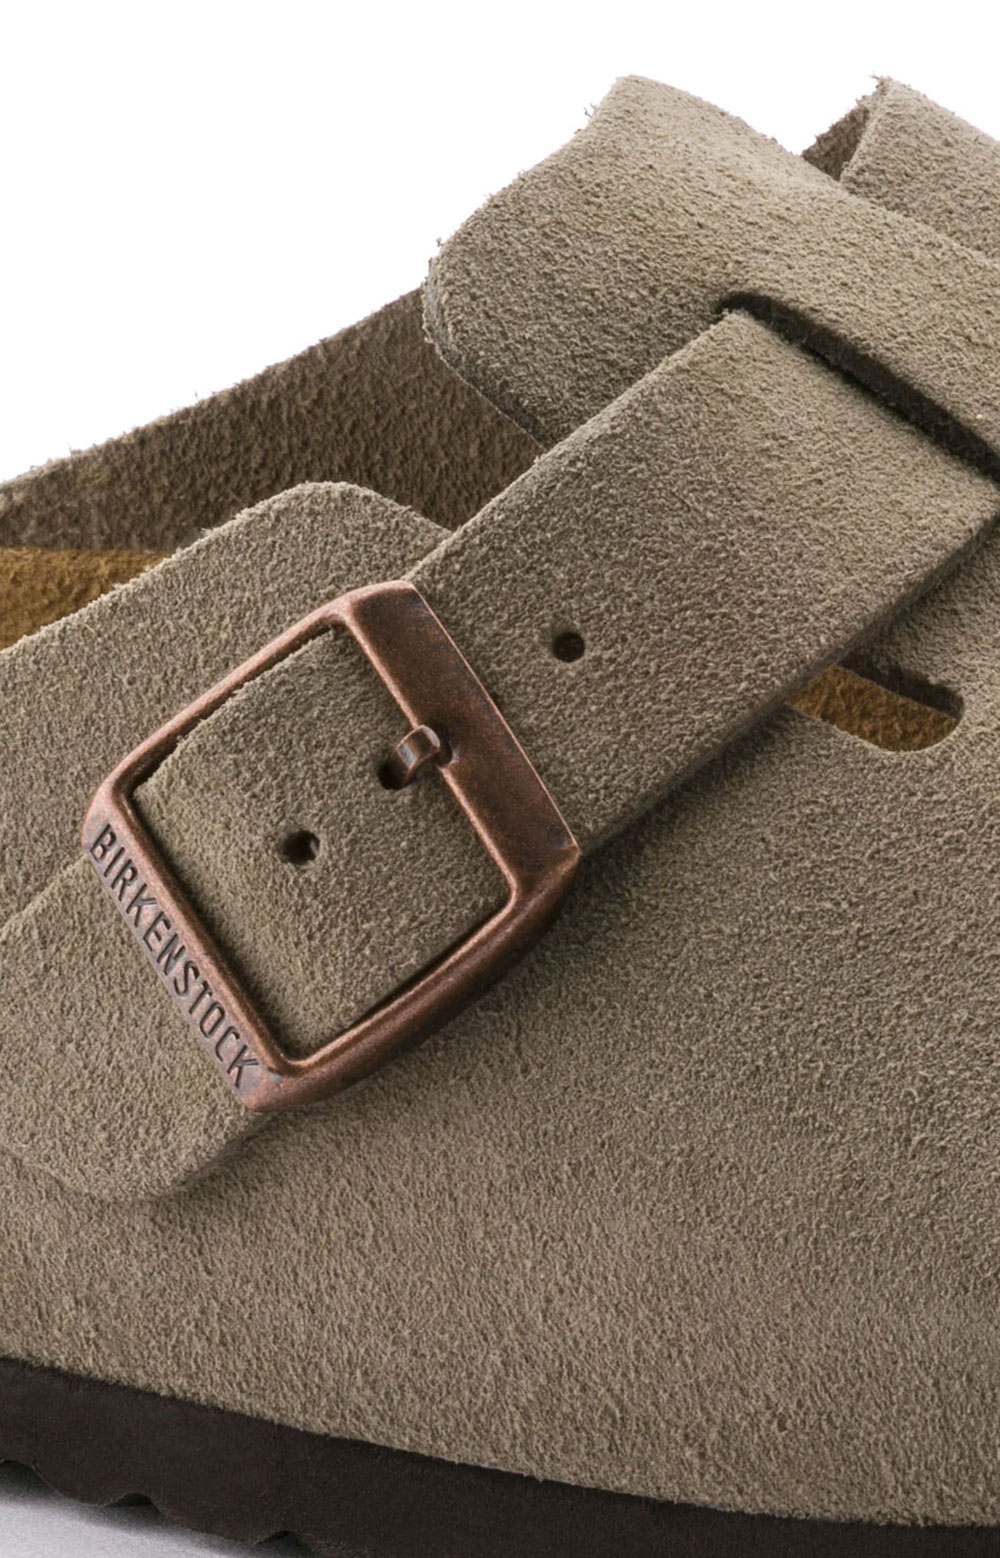 (0560771)Boston Soft Footbed Sandals - Taupe Suede  3